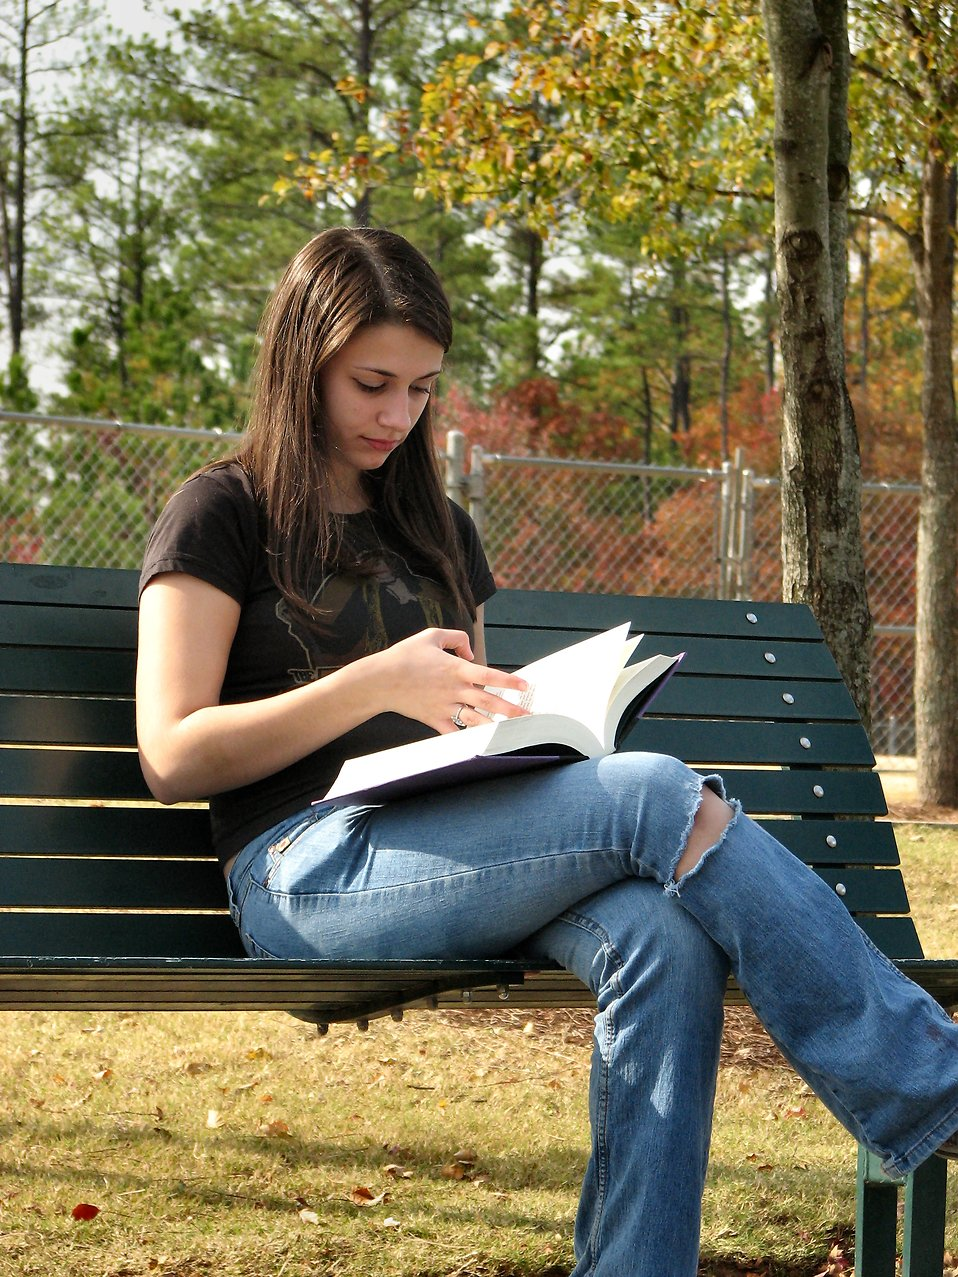 Teenage girl reading a book on a bench : Free Stock Photo